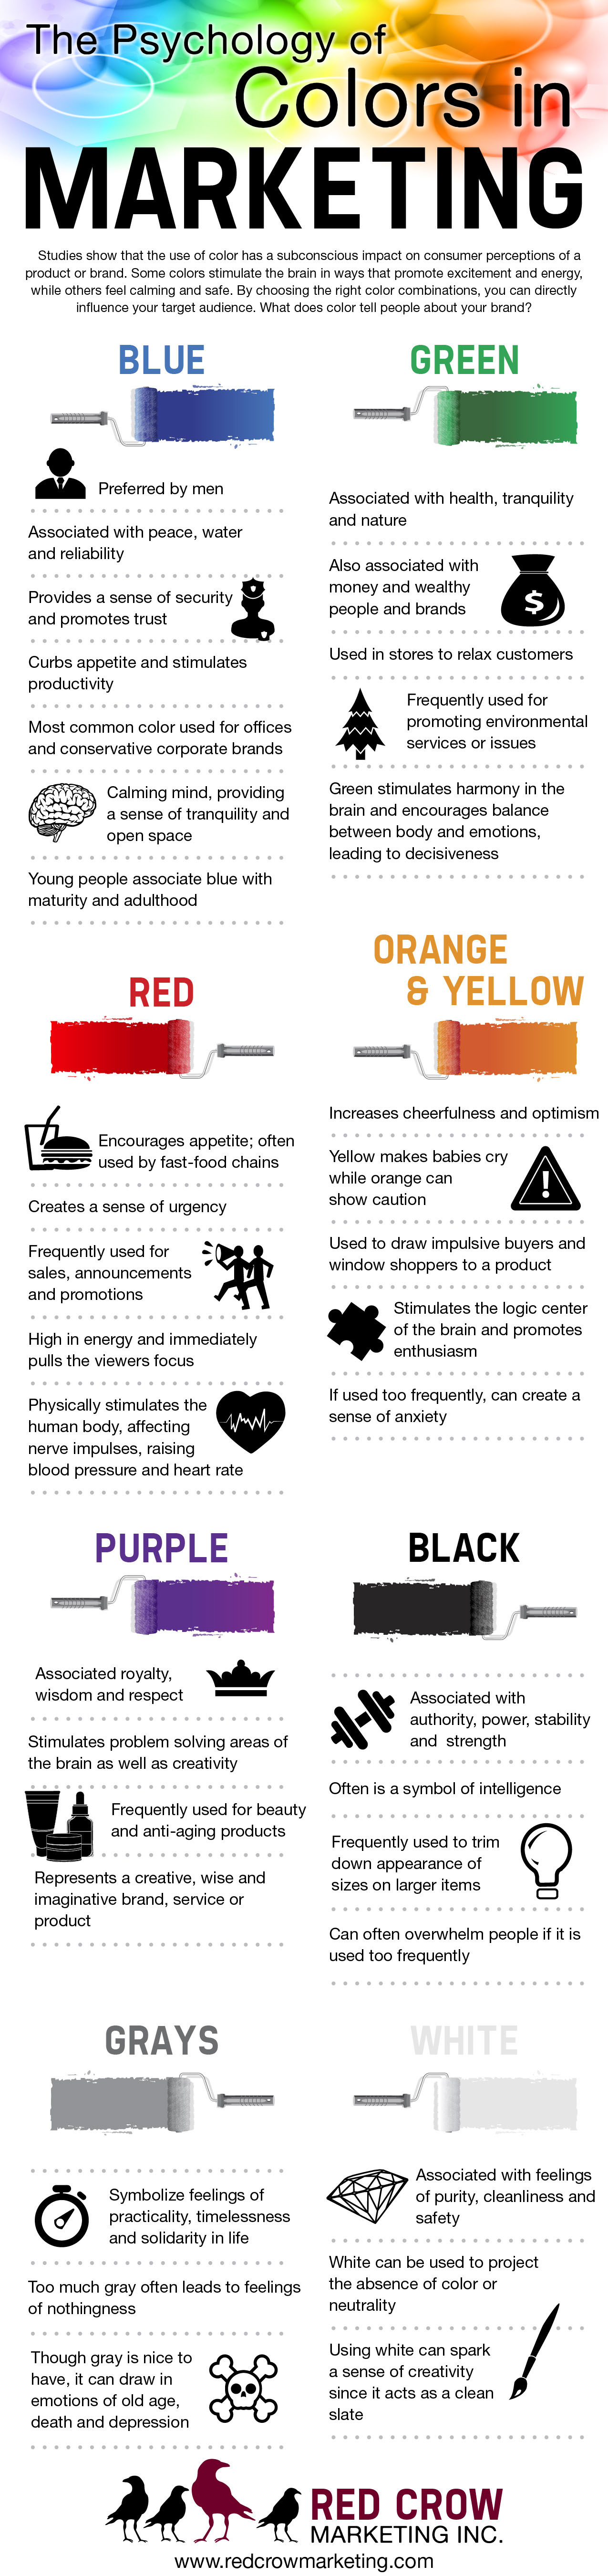 Red Crow Marketing Psychology of Color Infographic